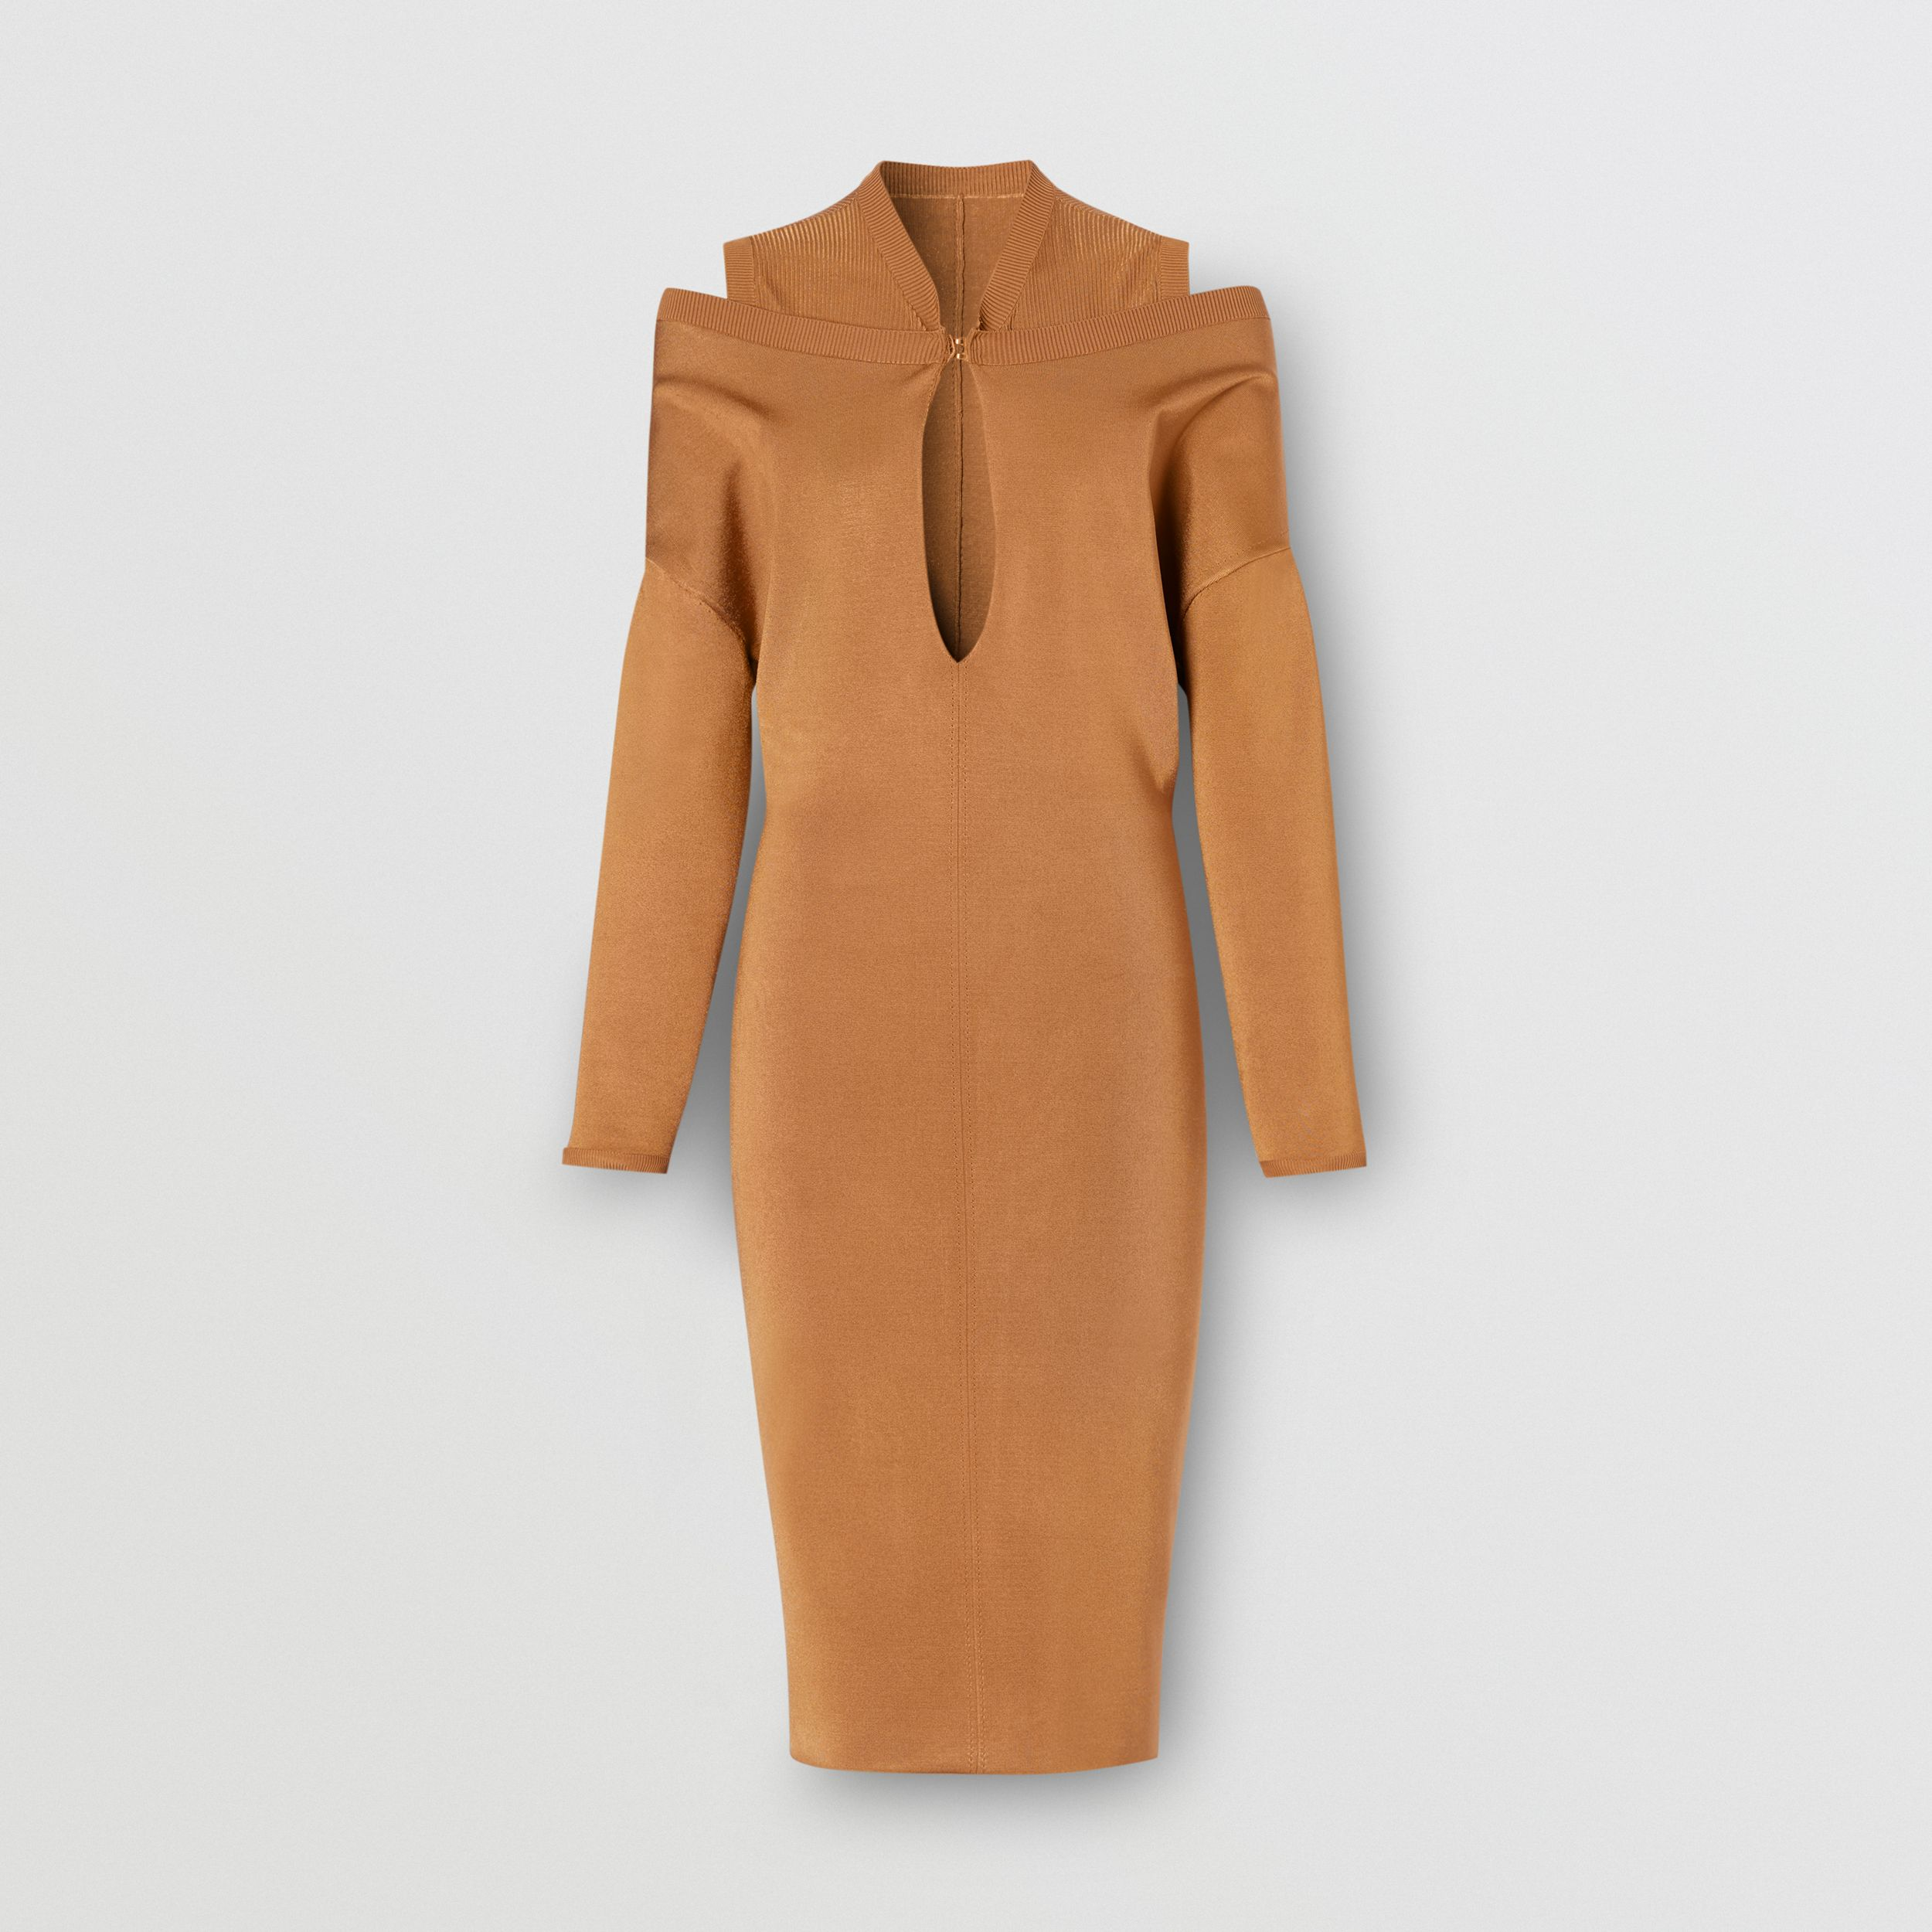 Long-sleeve Cut-out Detail Knitted Dress in Camel - Women | Burberry - 4